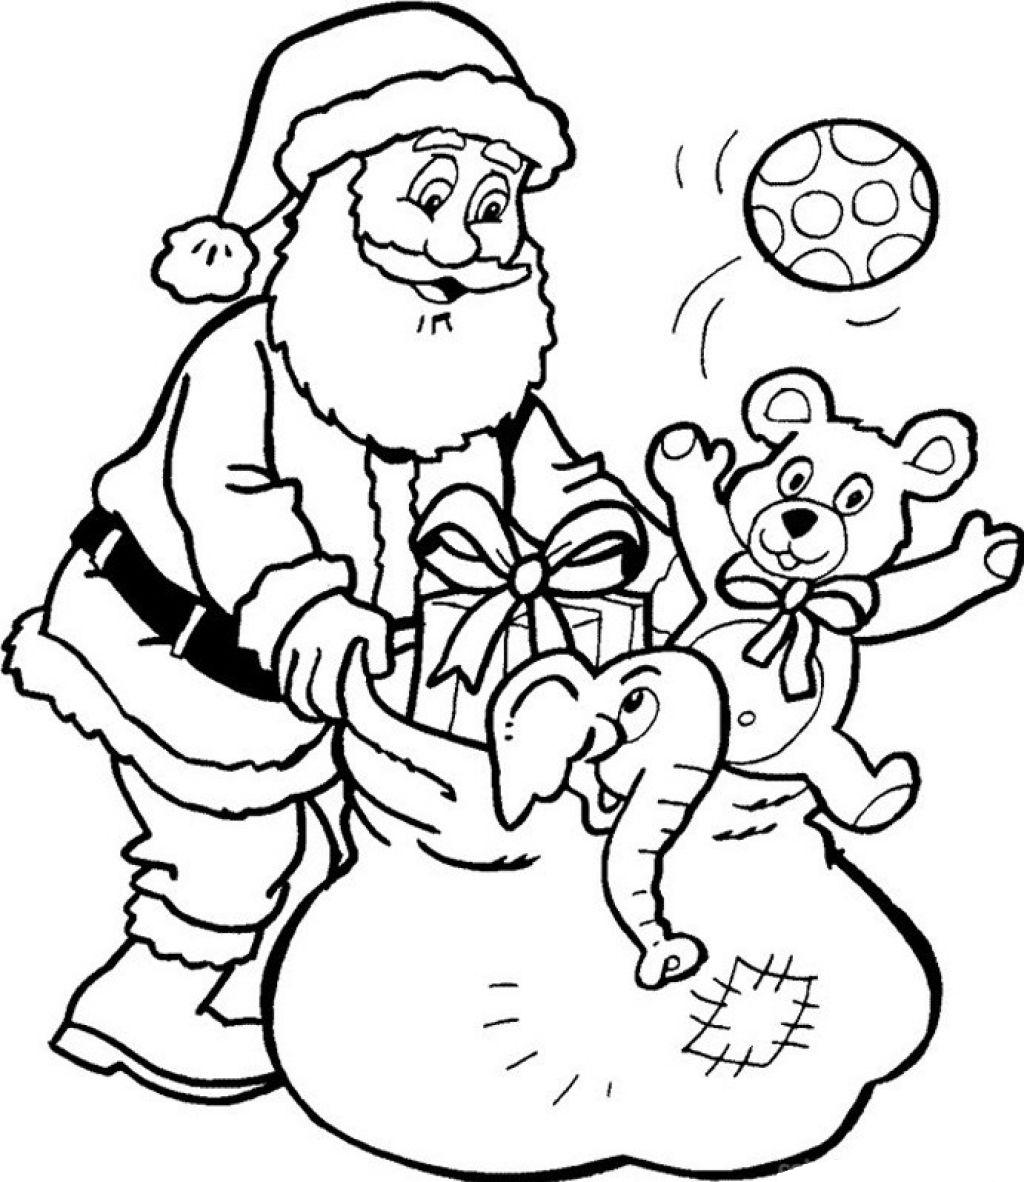 Christmas Santa Claus Drawings